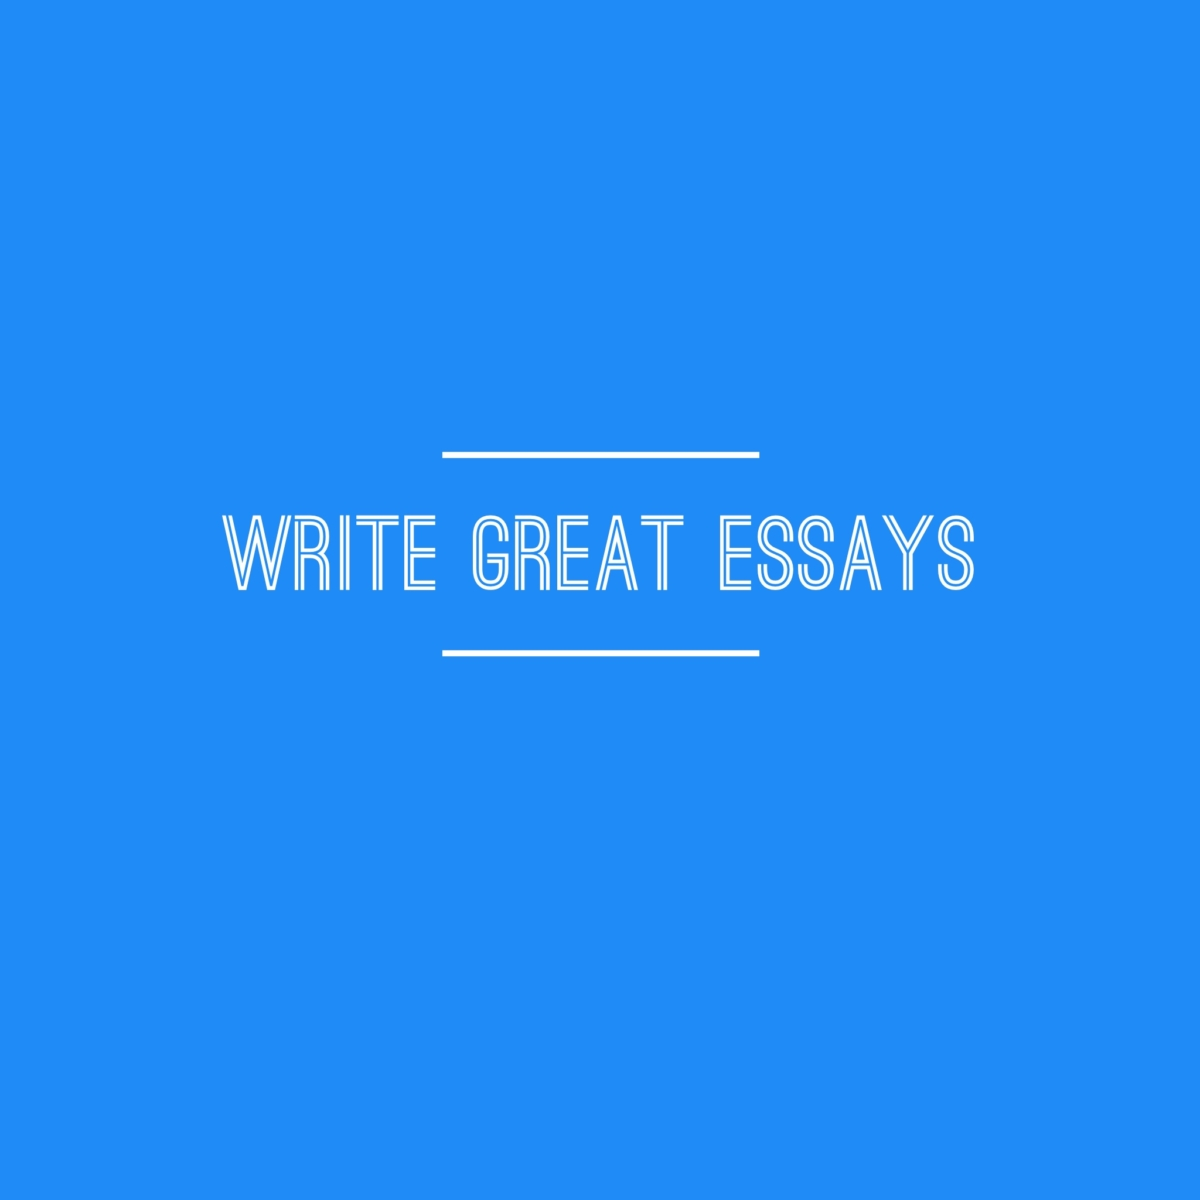 essay writing get paid Get essay writing jobs at academia-researchcom are you a subject matter expert in your field and want to get paid for writing essays for students.